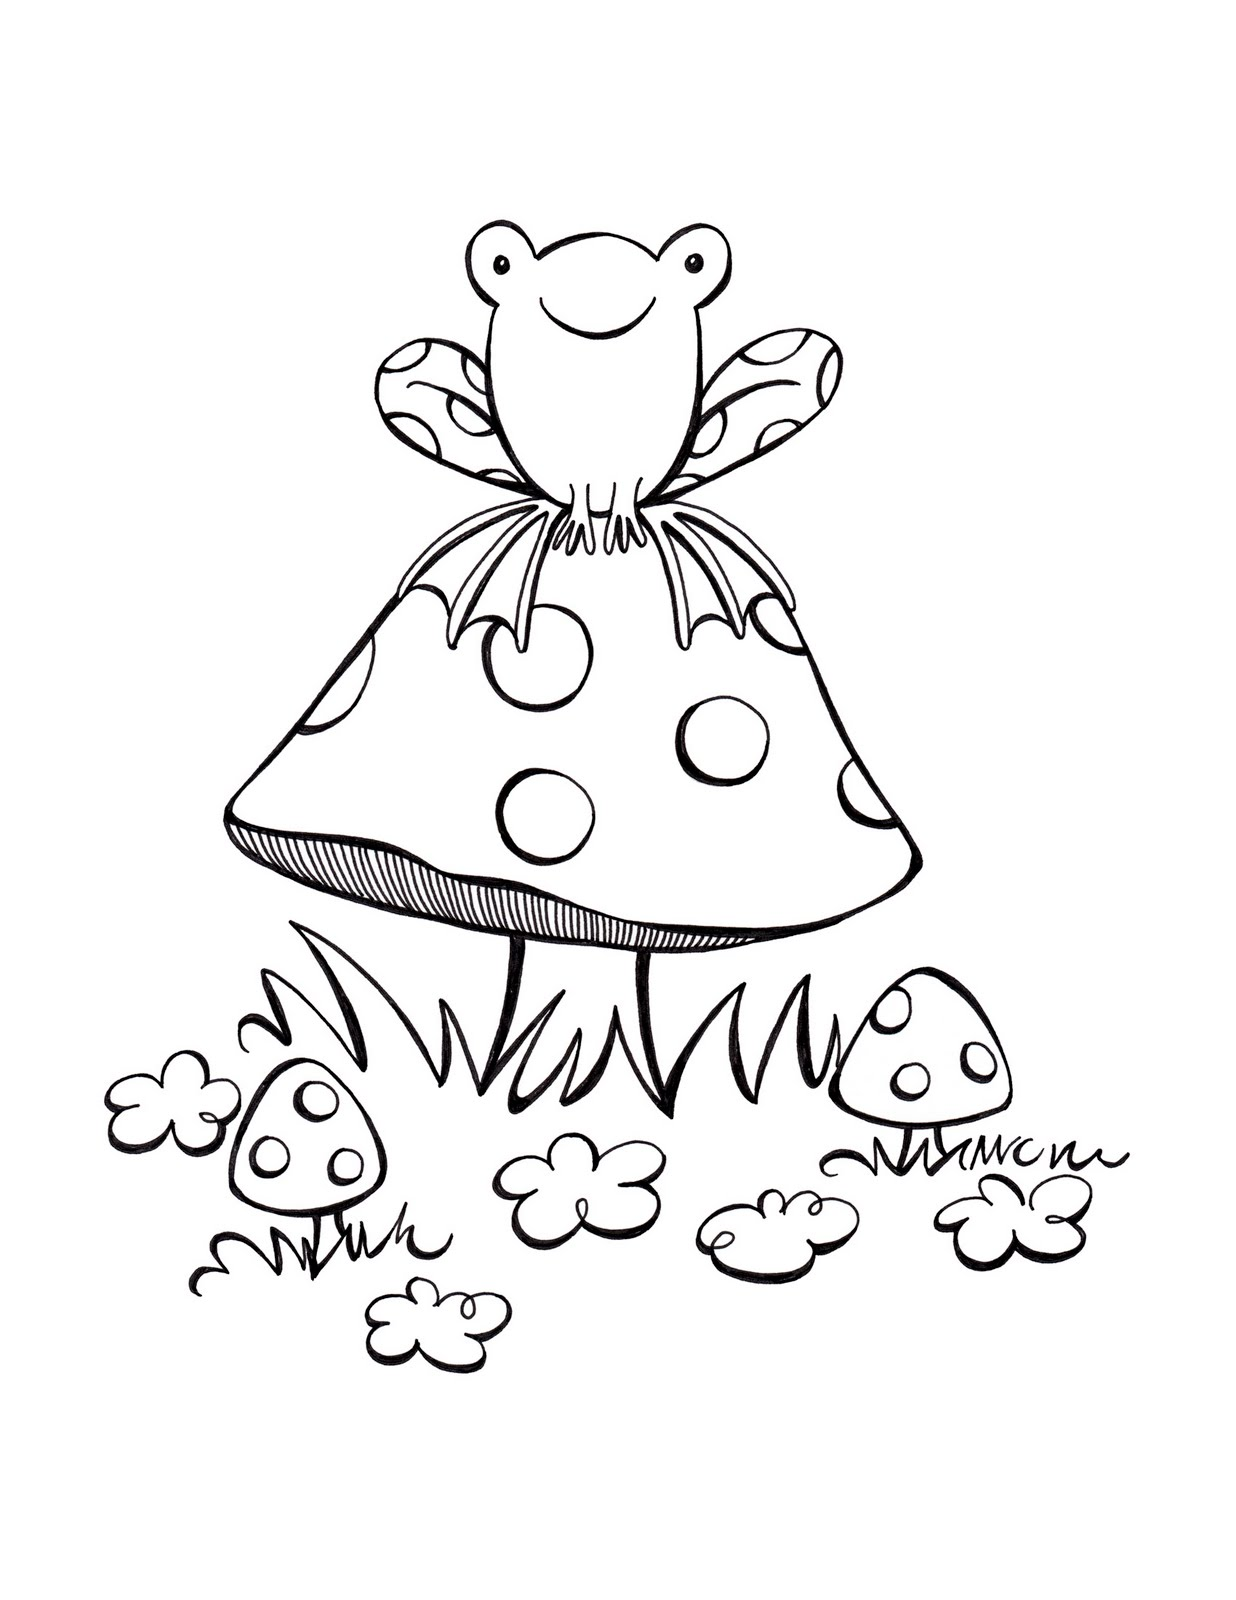 Kingdom Fungi Coloring Worksheet Answer Coloring Pages